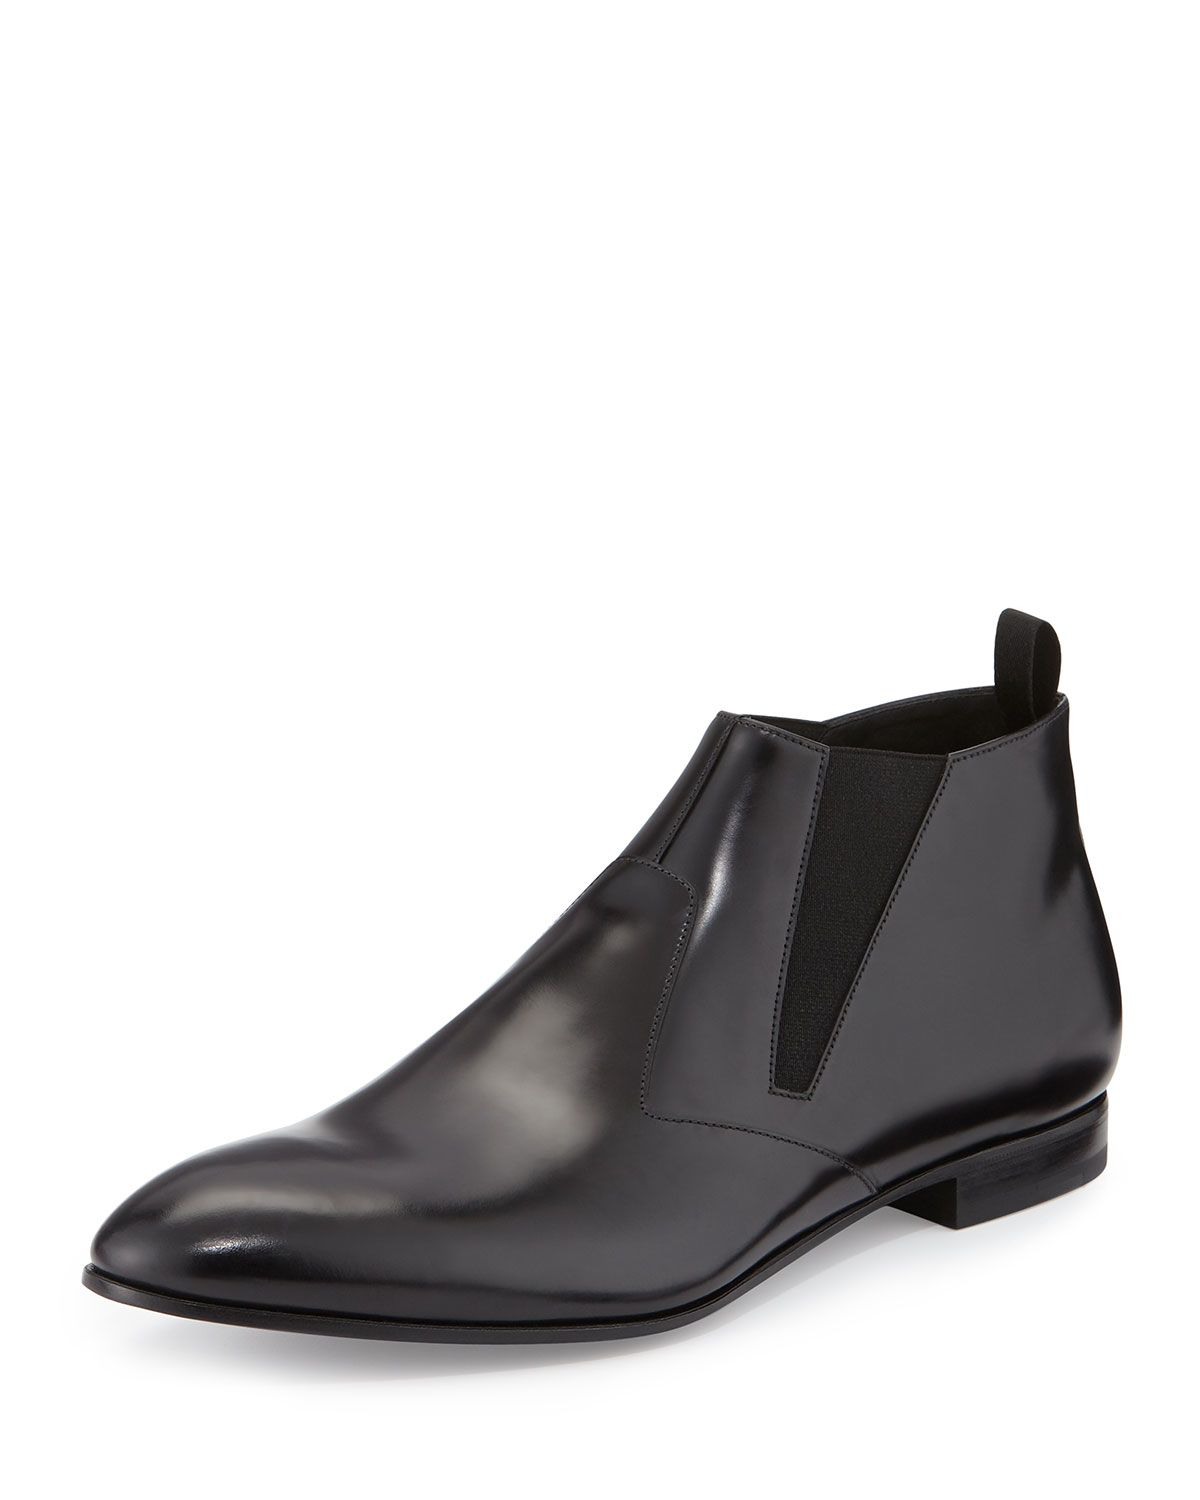 prada runway leather chelsea boot in black for lyst